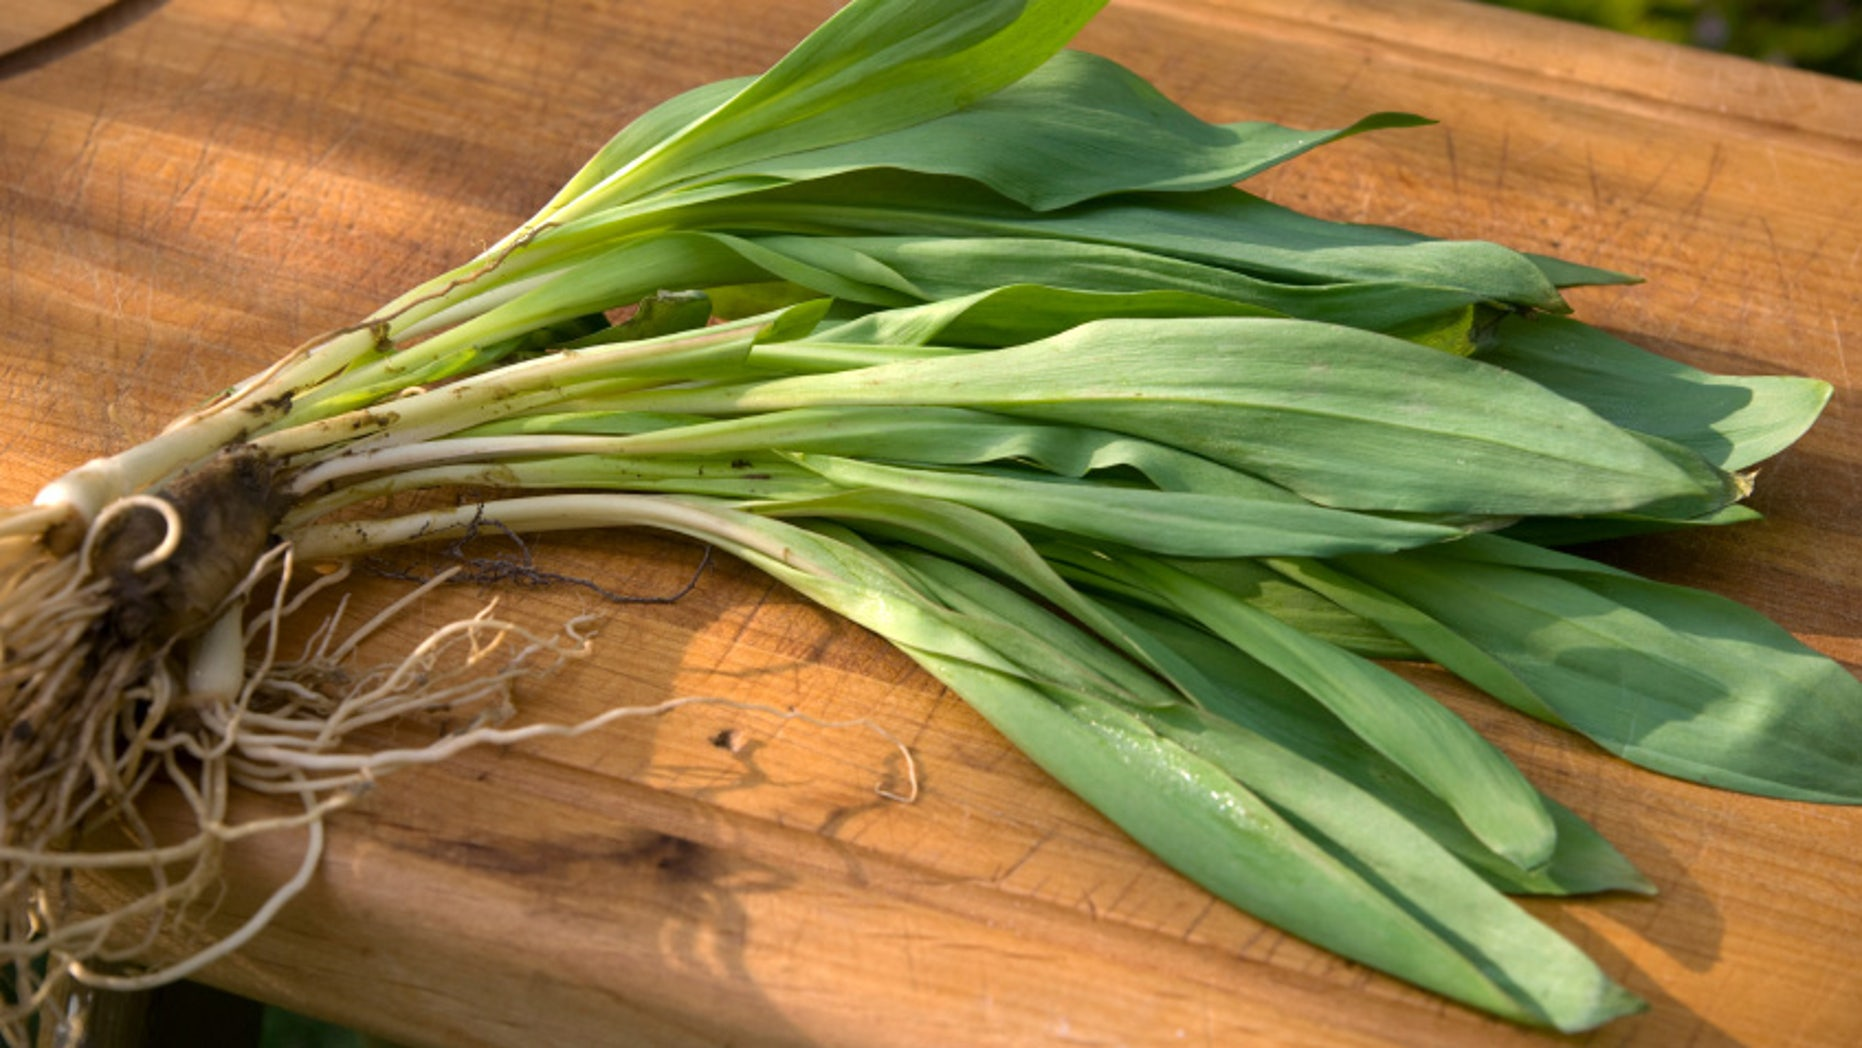 Ramps are considered a seasonal delicacy by chefs across the country.